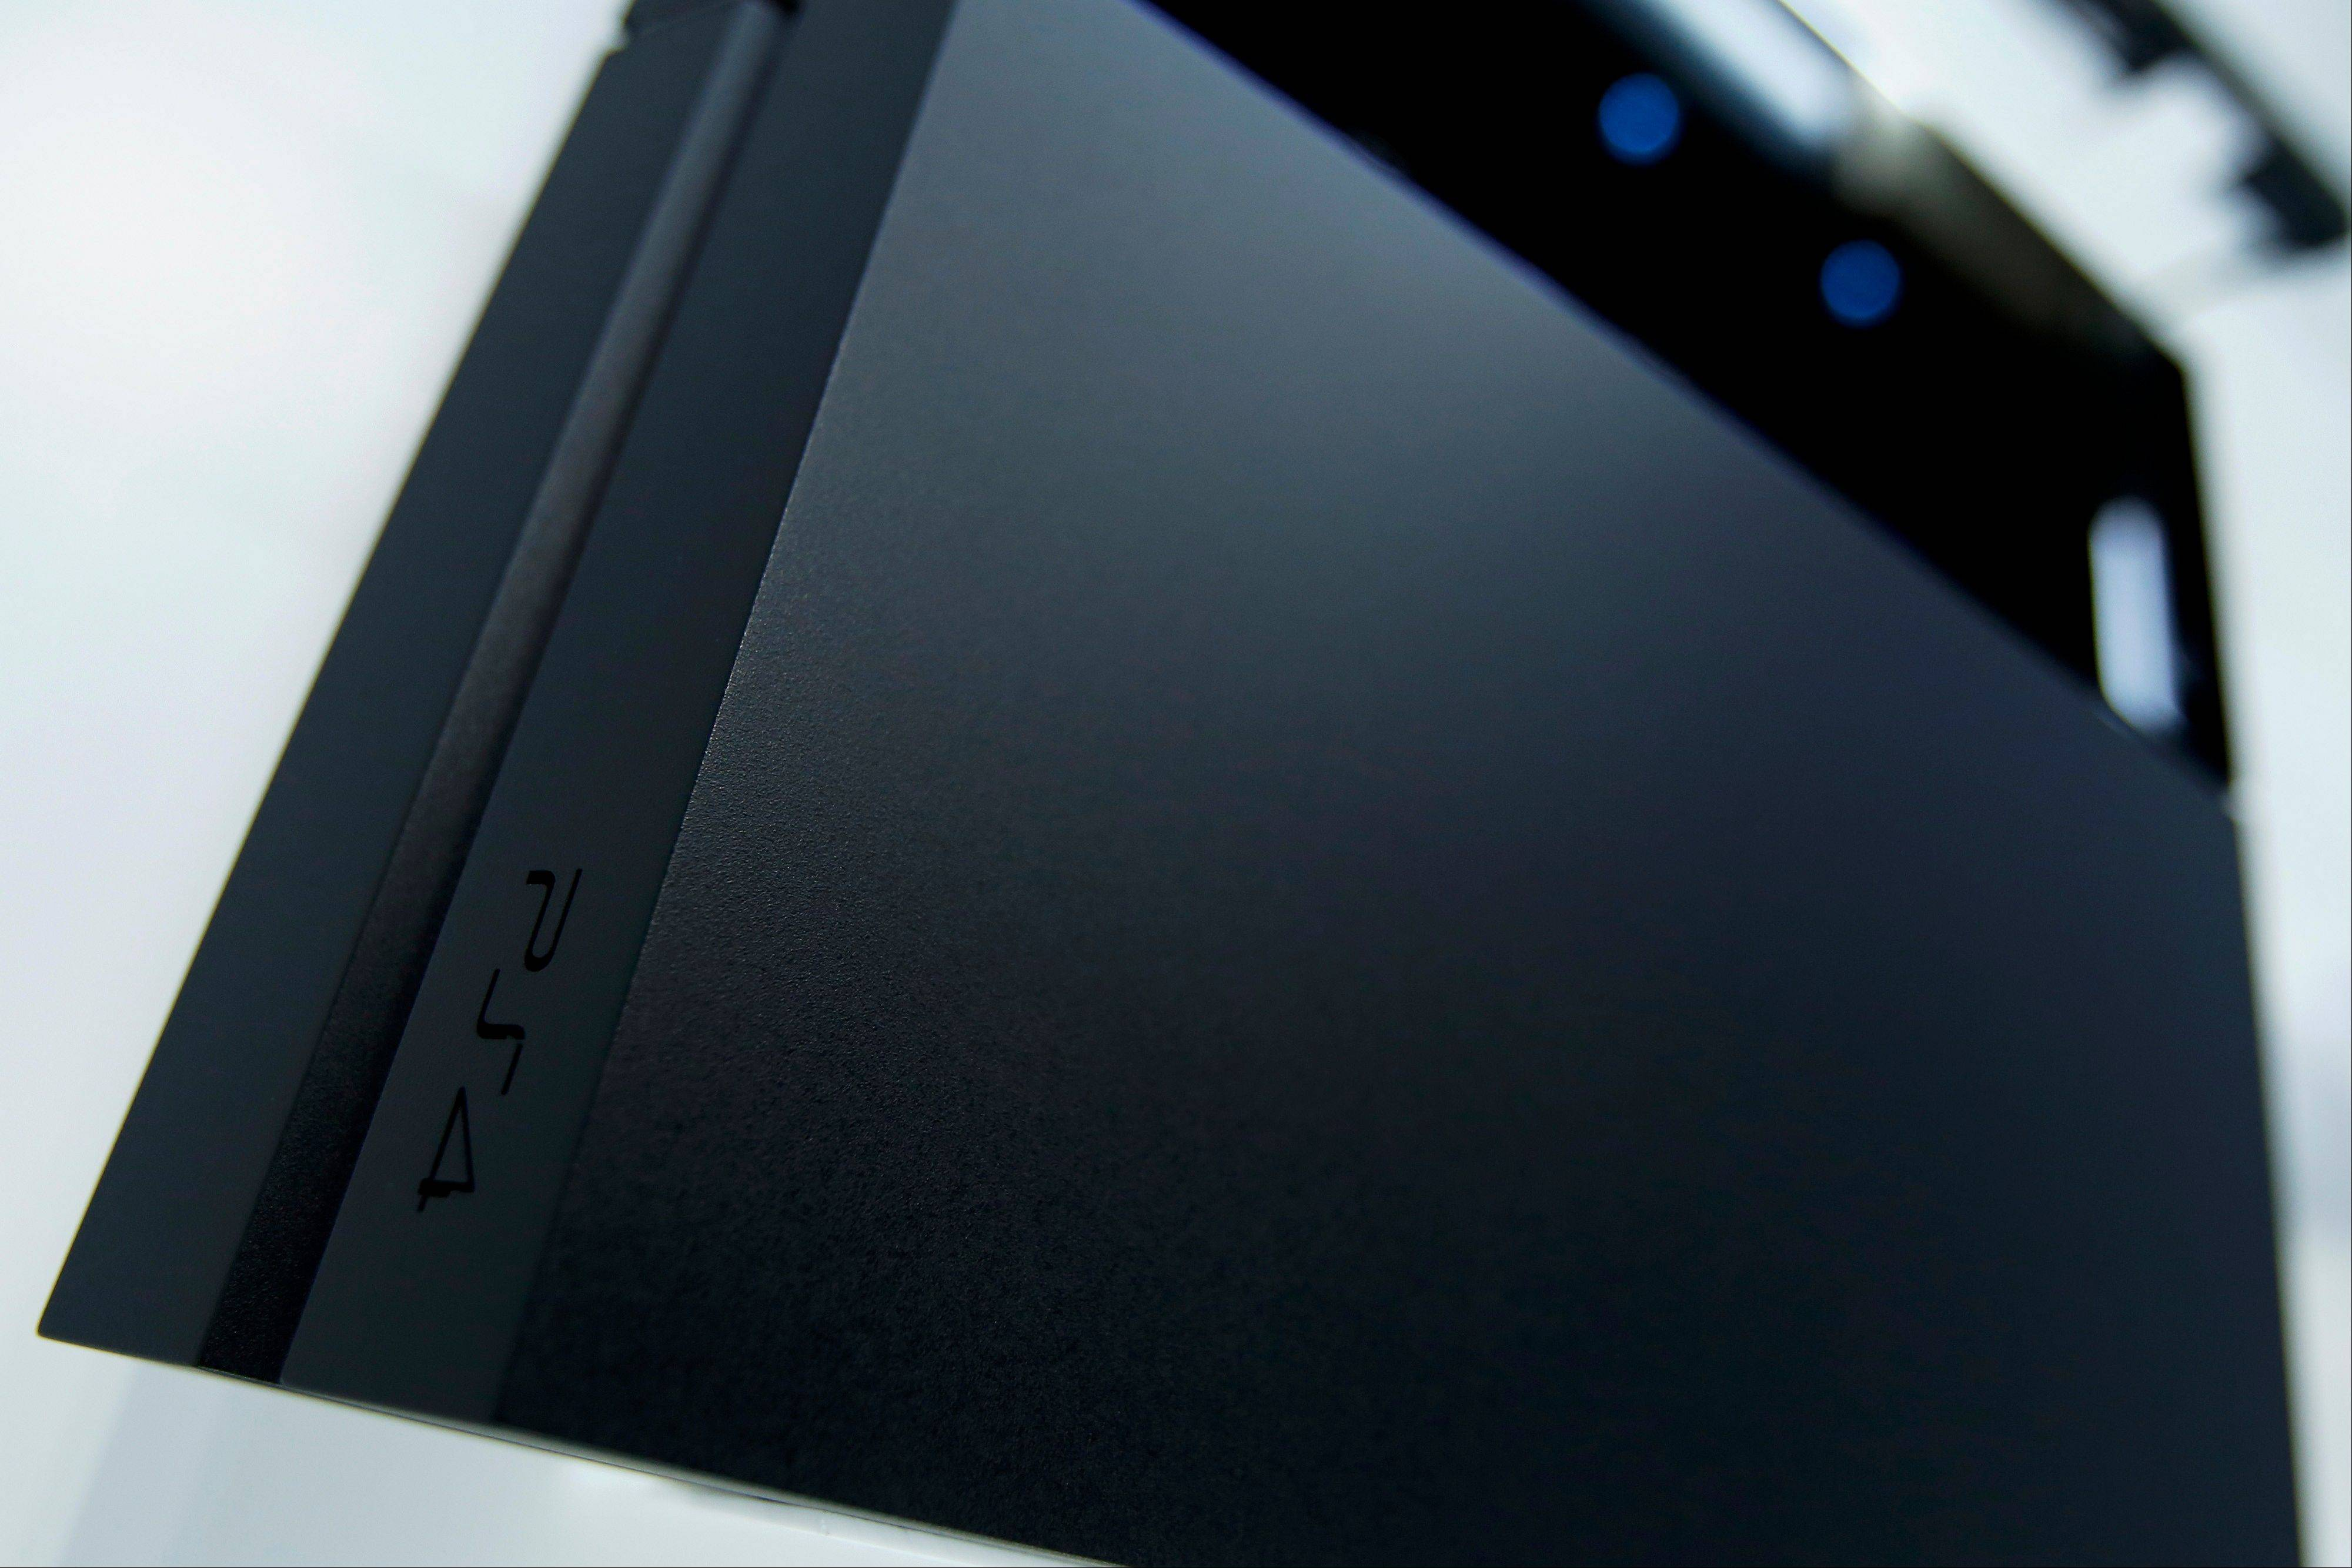 Sony Corp. will release the Japanese version of the PlayStation 4 console three months after reaching shelves in North America as it seeks to avoid the supply issues that caused the predecessor to miss initial targets.